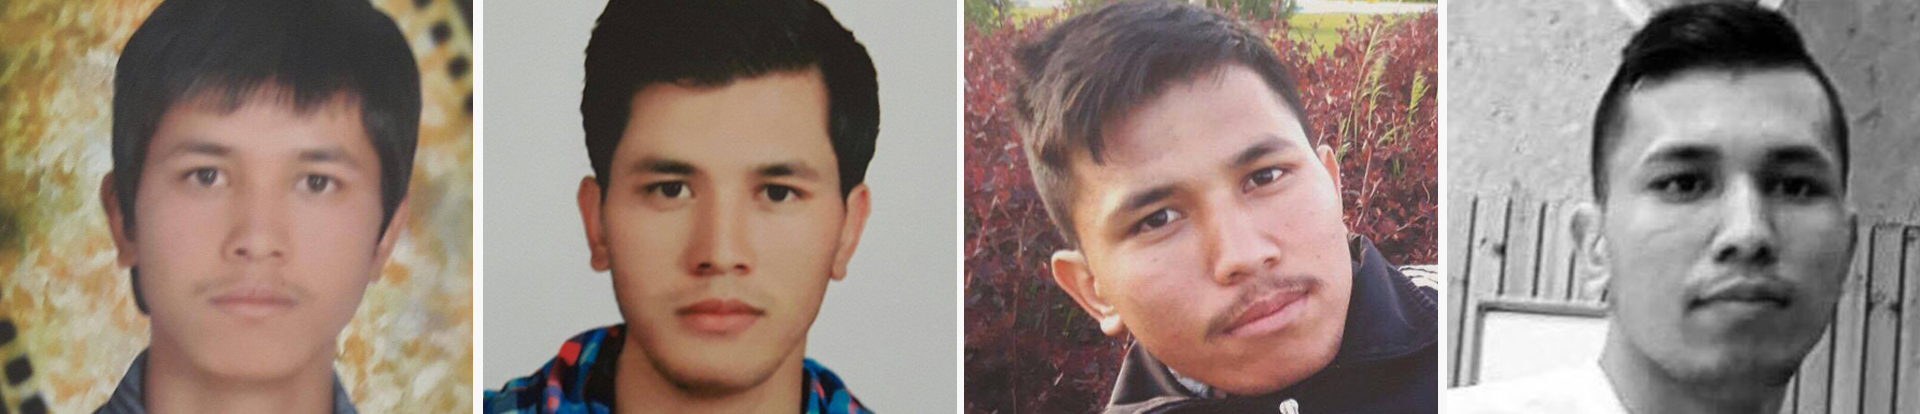 afghan boy s hope for a new life in europe ends in suicide the brightest ansari at age 13 14 and 16 years old a few days before he left for europe the final picture on facebook was in the post that